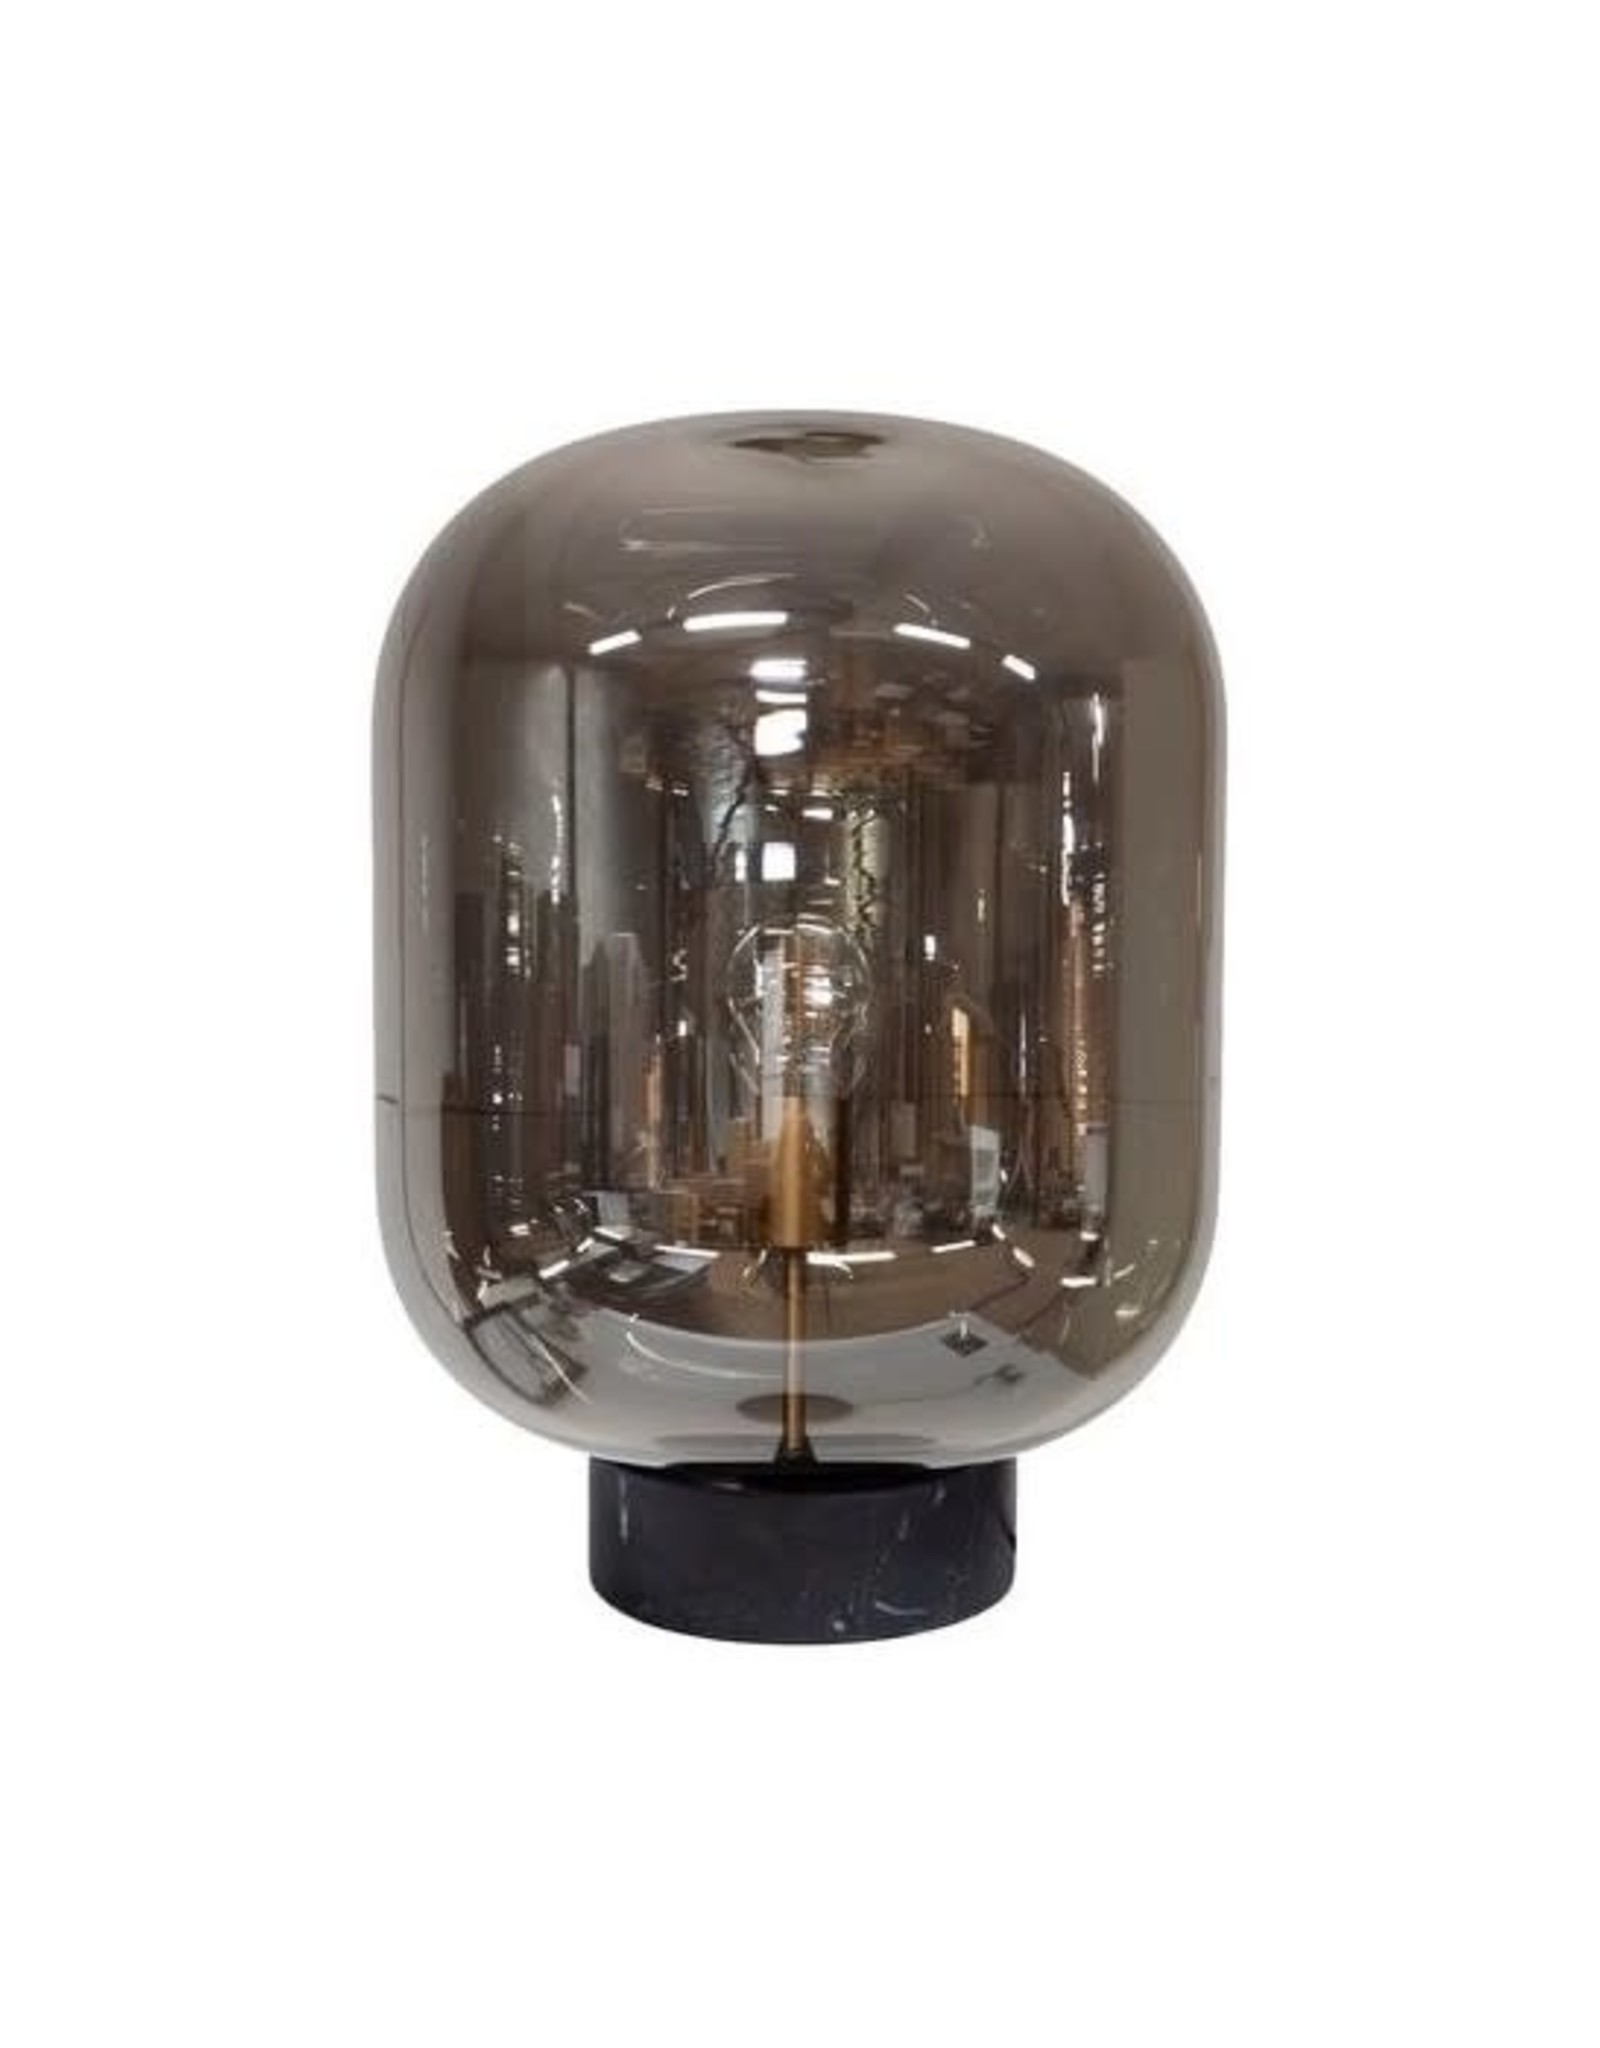 Dome Deco Dome deco - Tablelamp glass with marble base